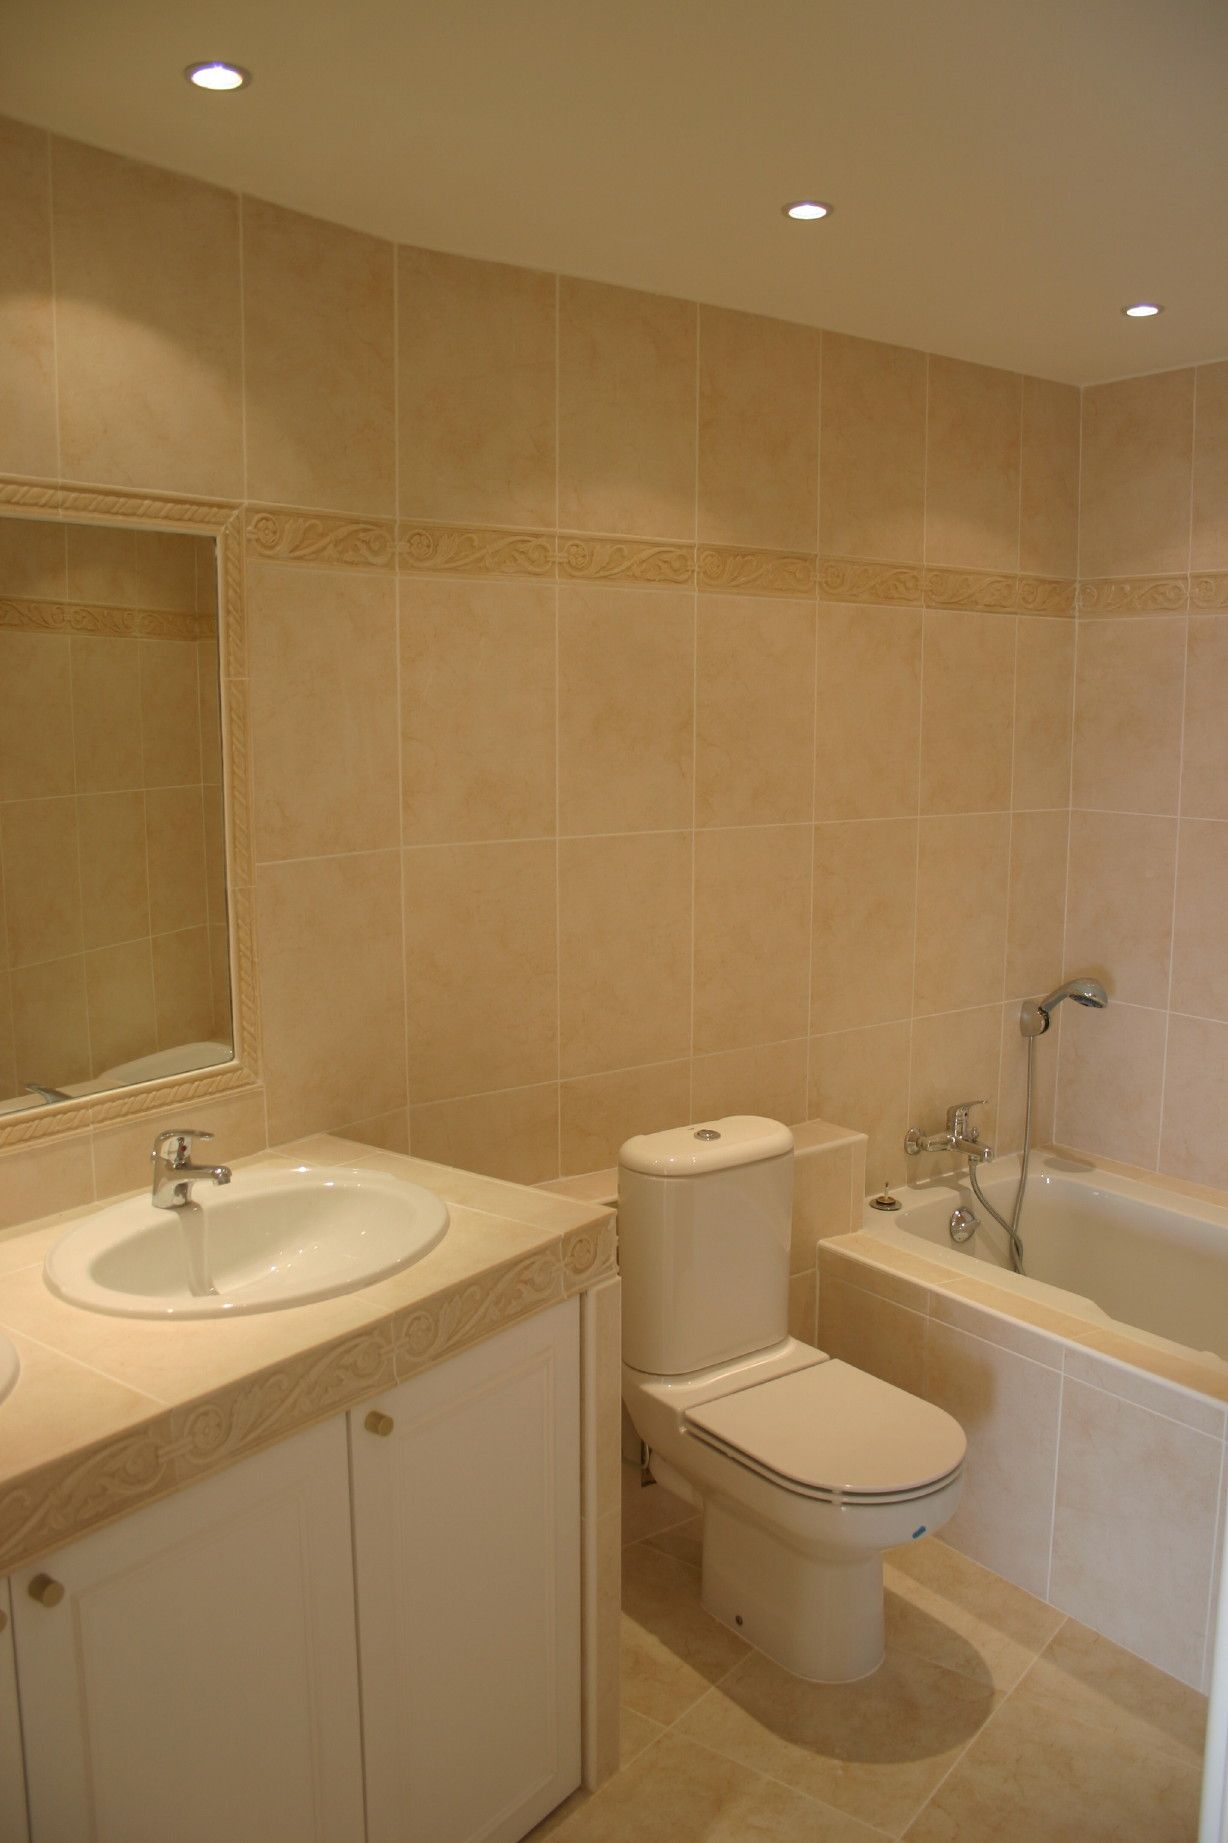 Spotlights In Small Bathroom Small Bathroom Ideas- Recessed Lighting Makes All The